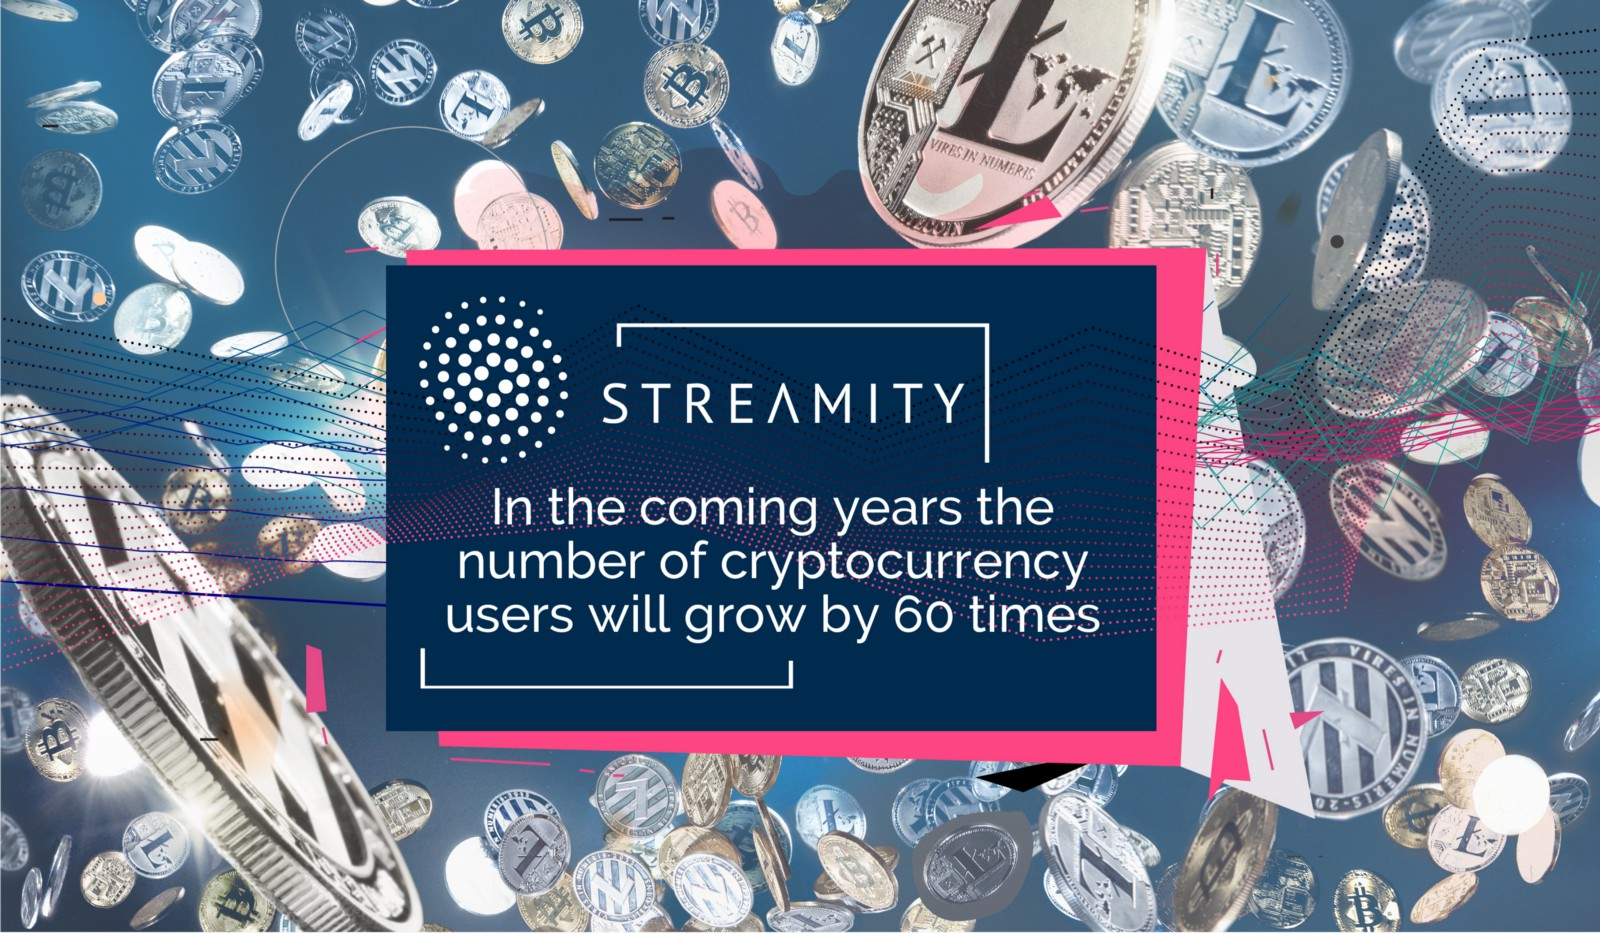 In the coming years the number of cryptocurrency users will grow by 60 times - 웹